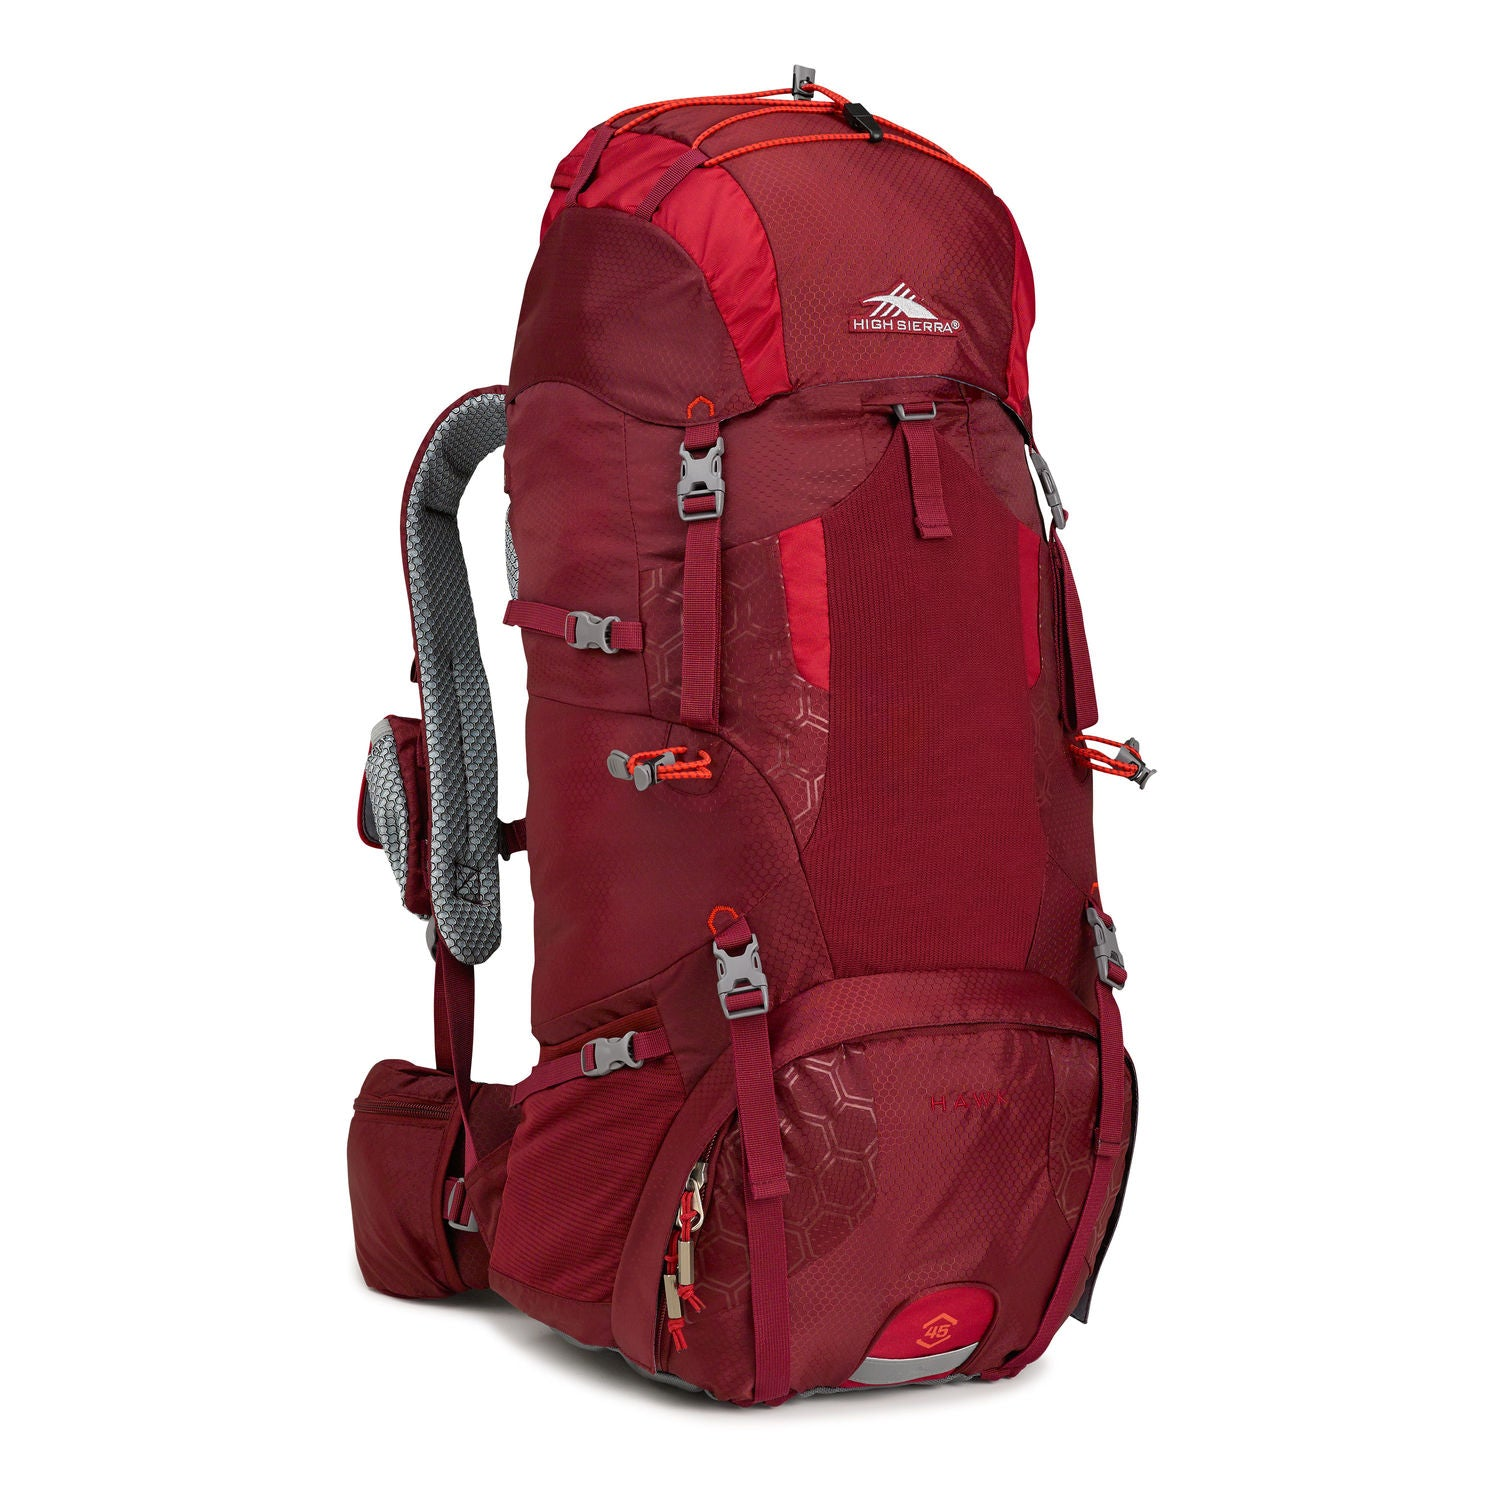 527eda077c41 High Sierra Water Resistant Backpack- Fenix Toulouse Handball